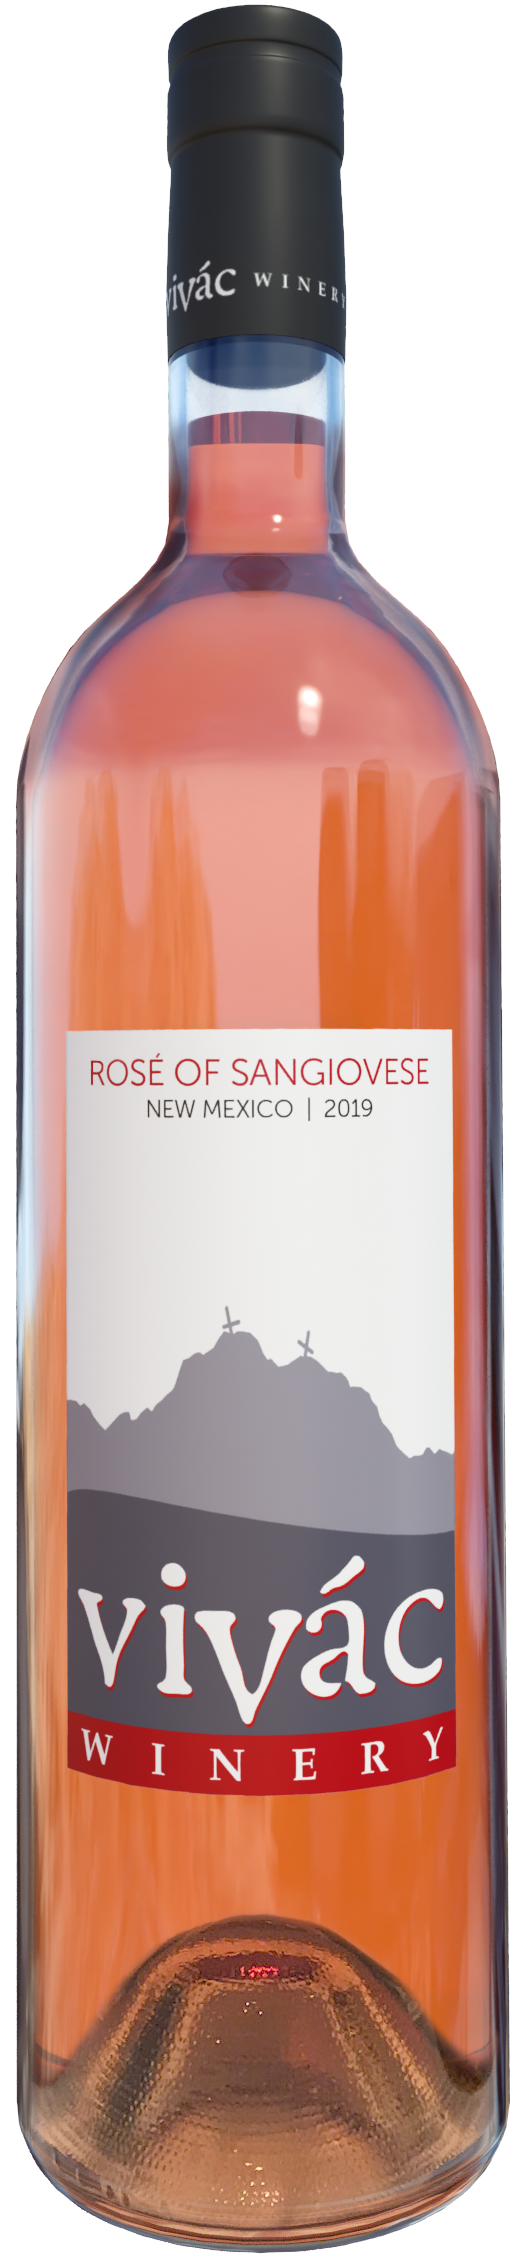 2019 Rose of Sangiovese